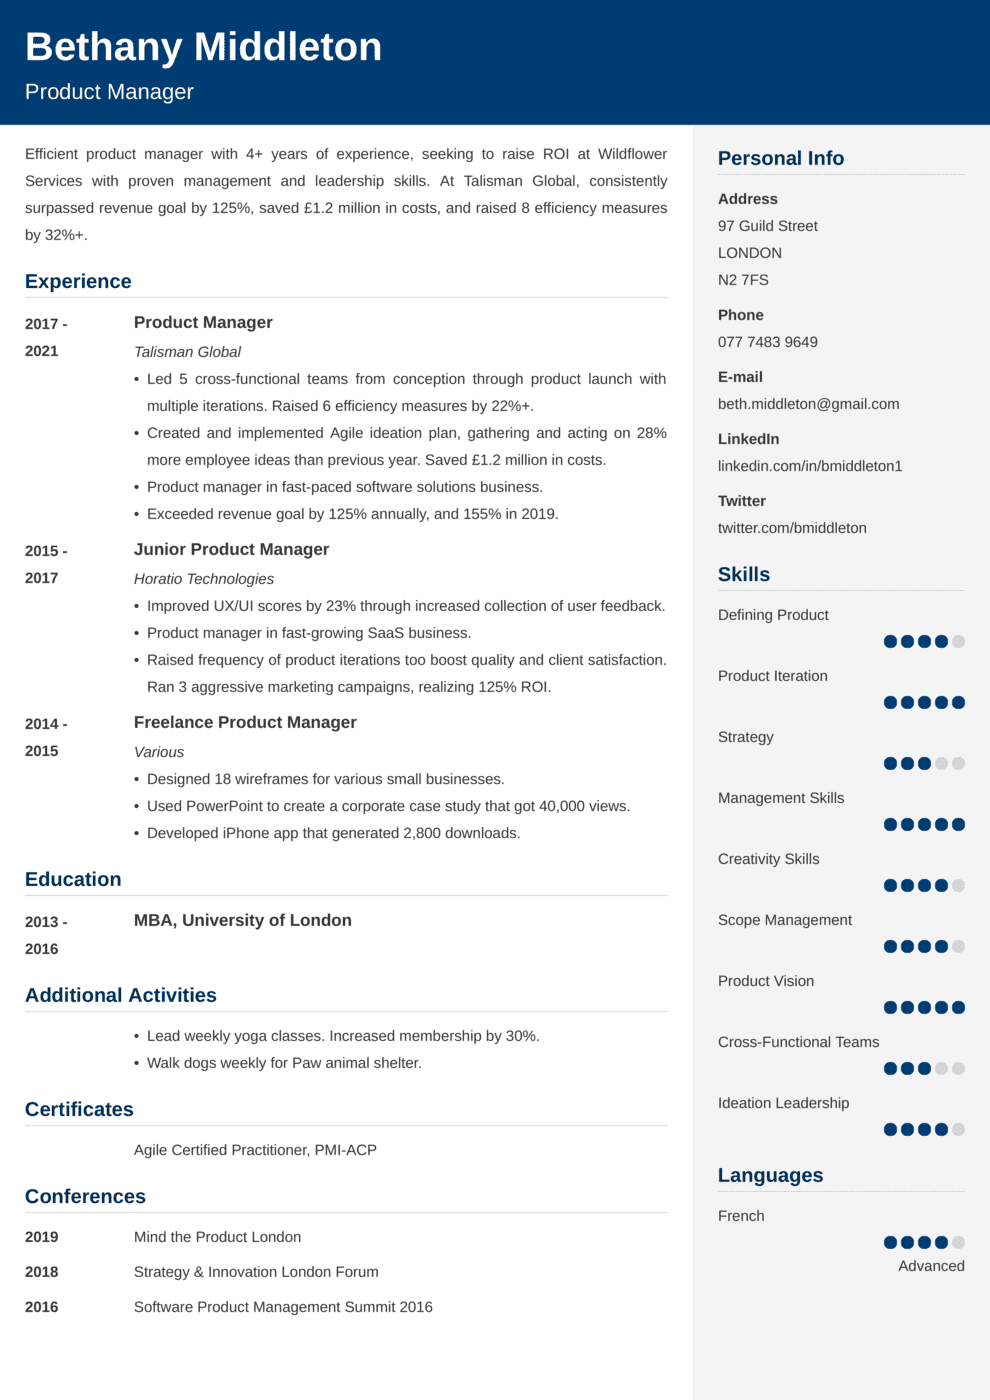 Product Manager CV Example